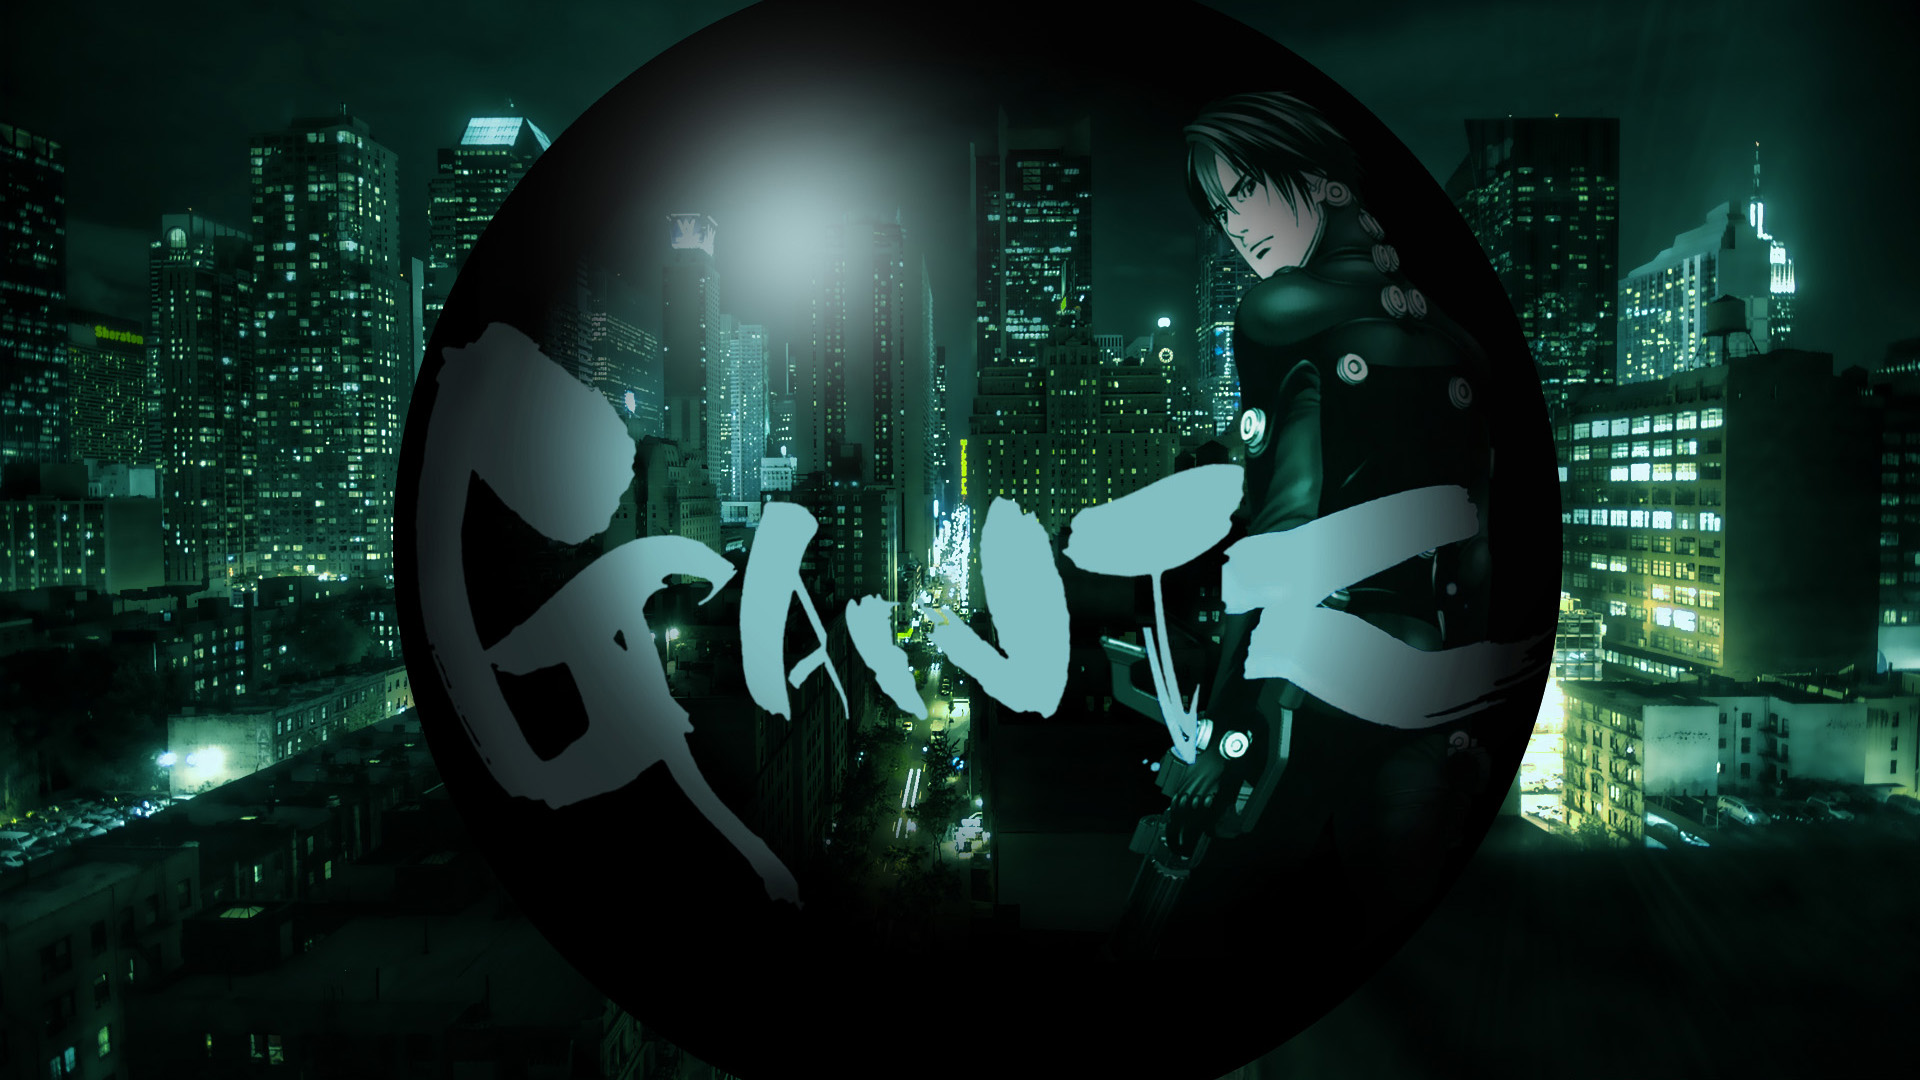 [Critique Anime] Gantz